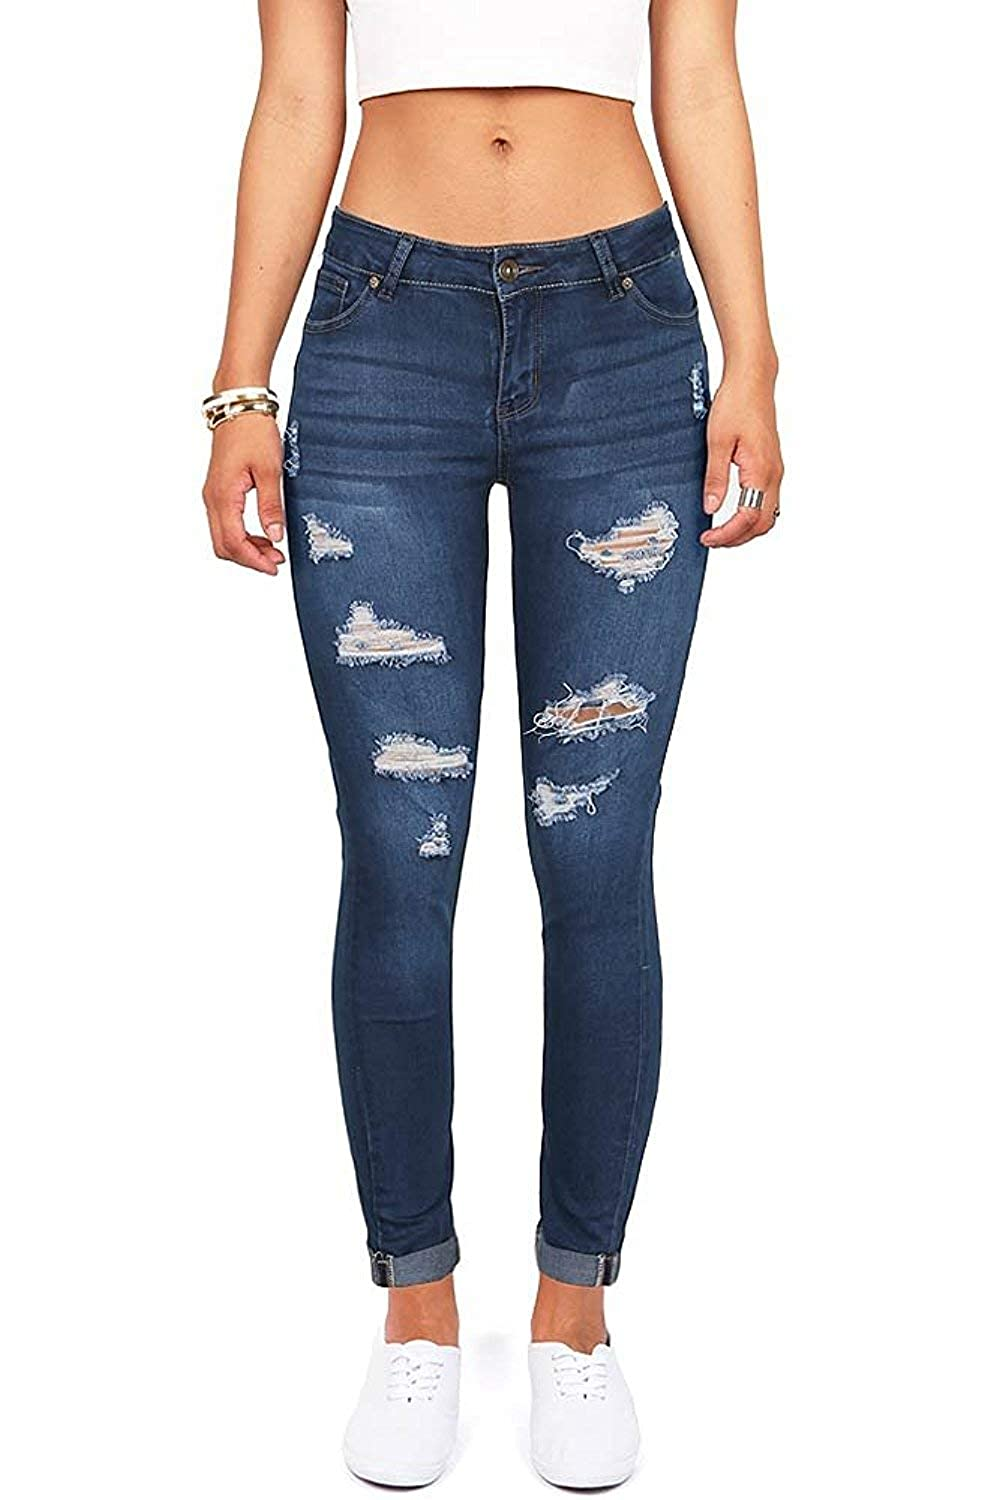 36db3e141f2 Women s High Waisted Butt Lift Stretch Ripped Skinny Jeans Distressed Denim  Pants Blue 35 US 16 at Amazon Women s Jeans store